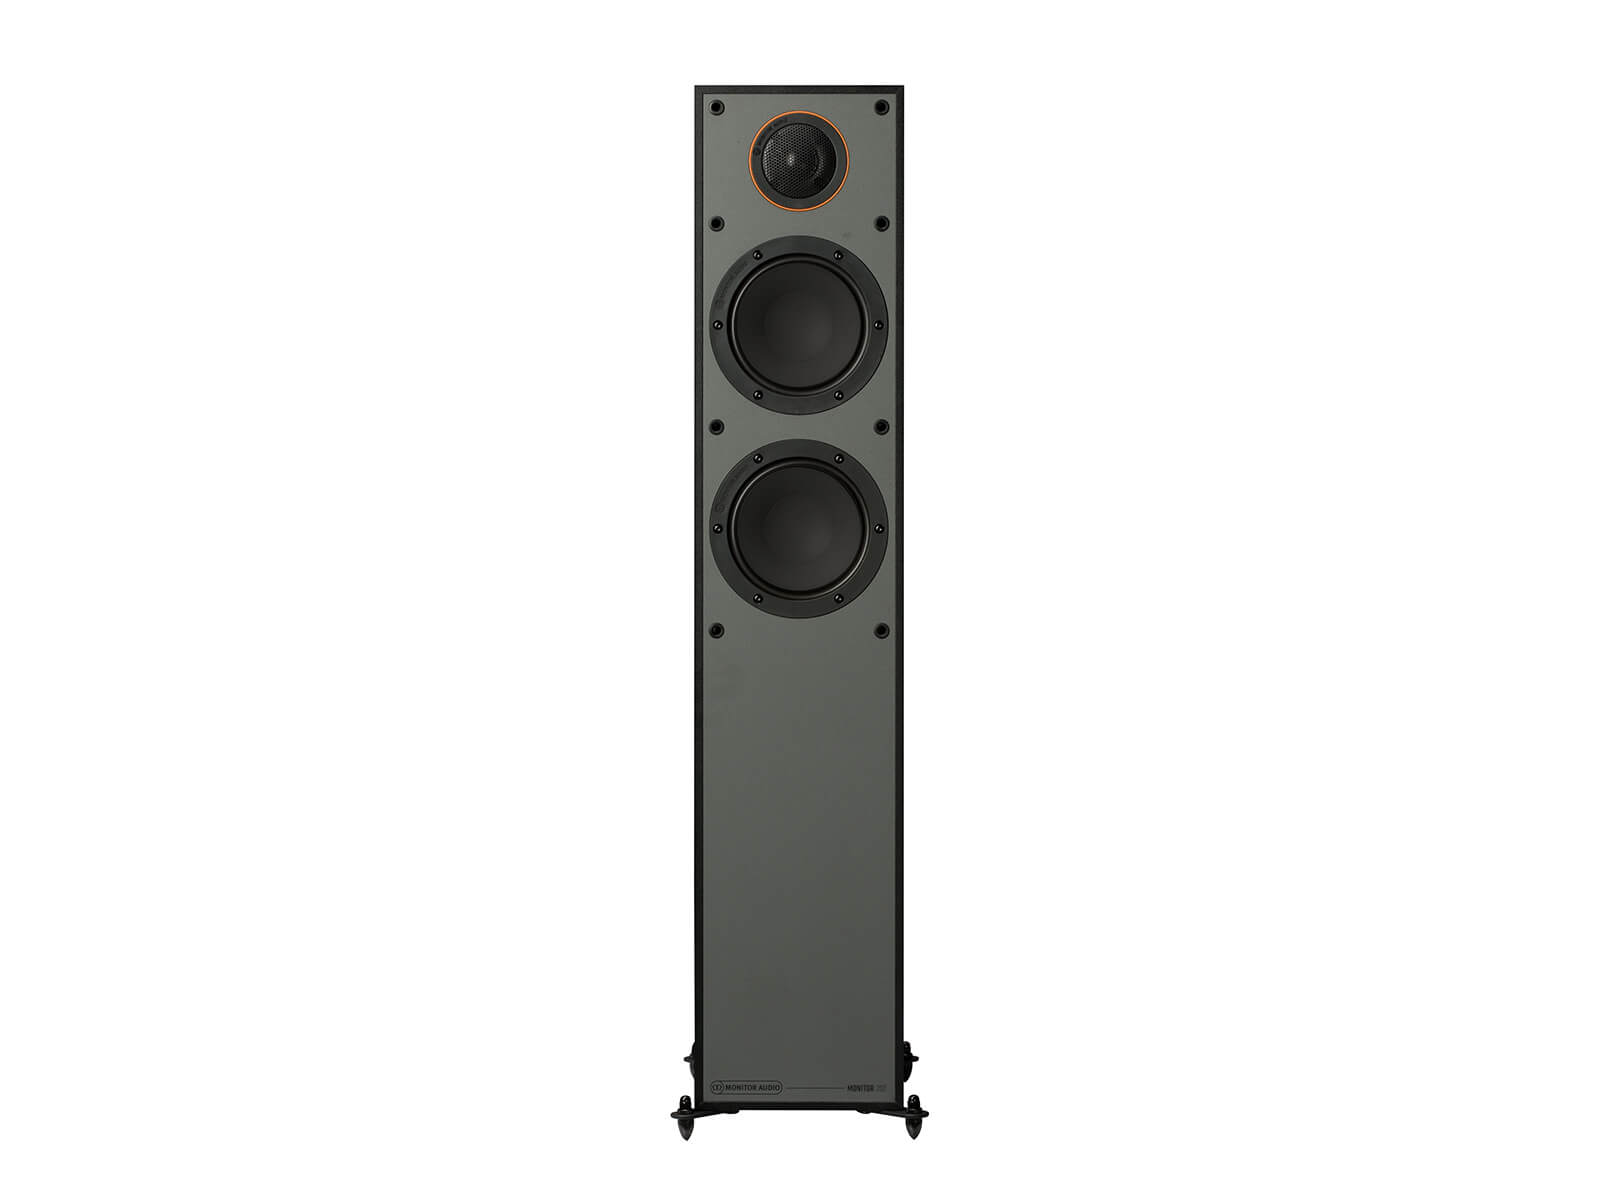 Monitor 200, floorstanding speakers, without grille, front on in a black finish.